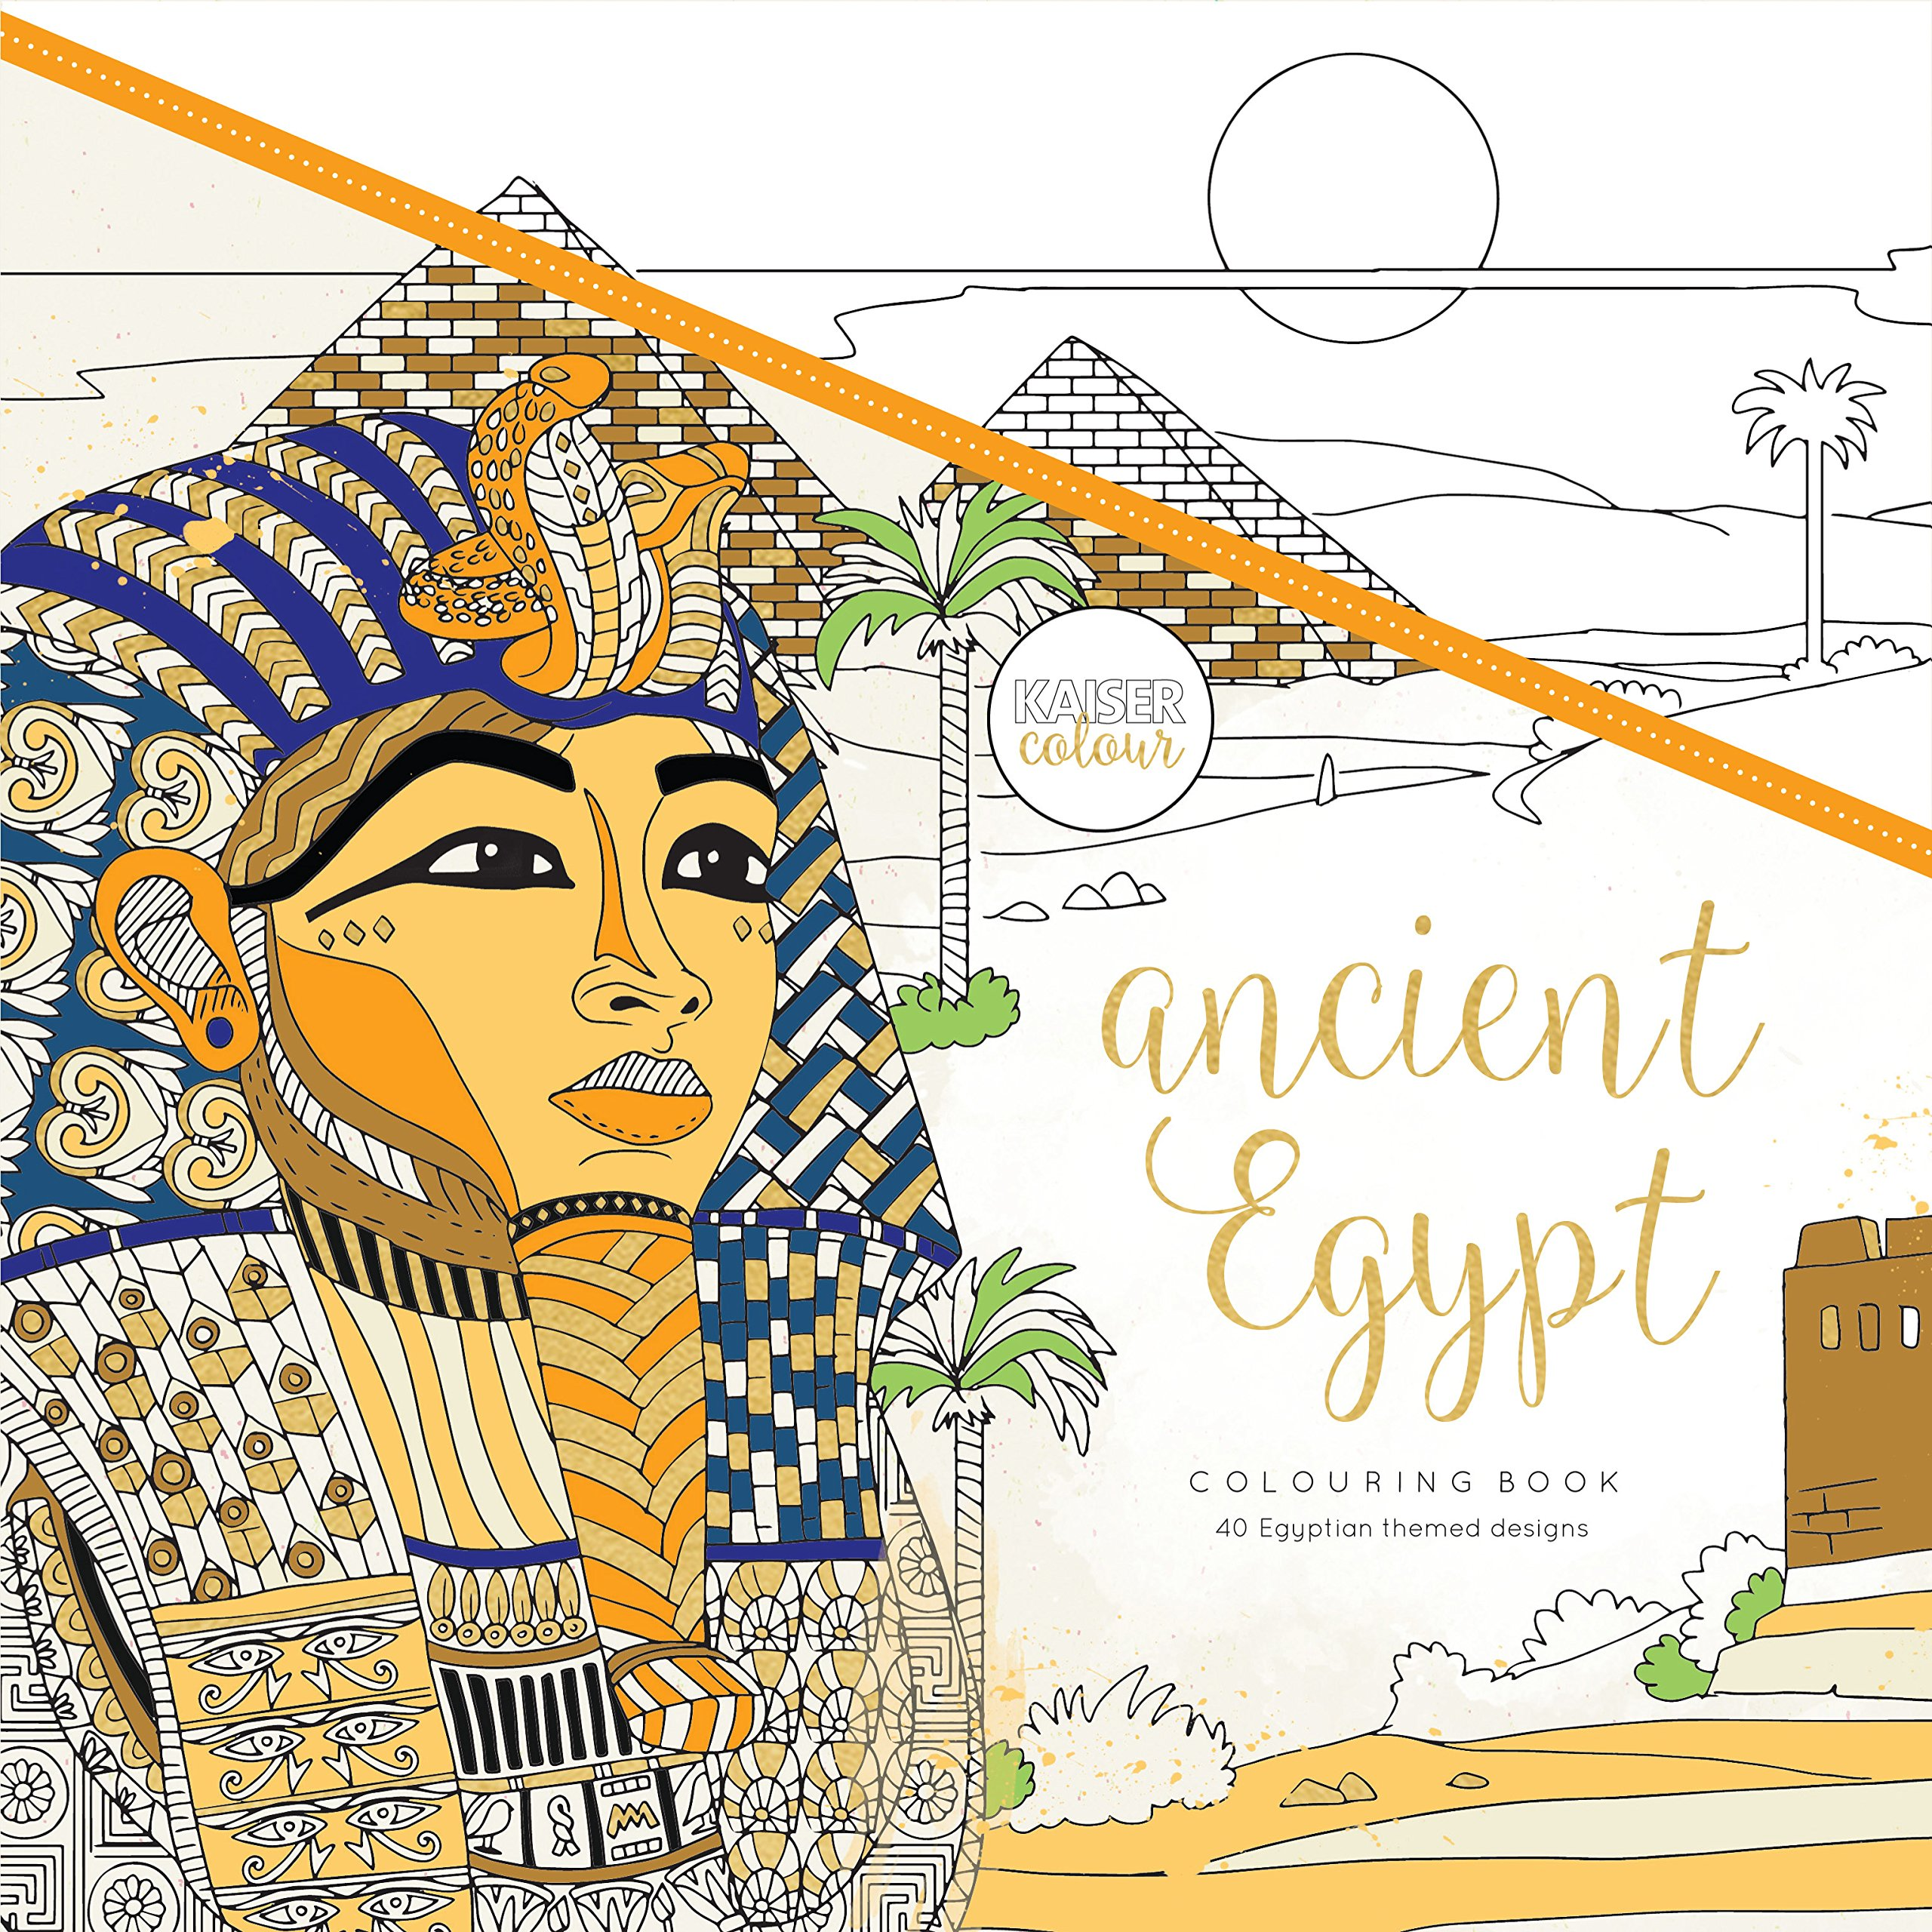 Kaisercraft'' Ancient Egypt KaiserColour Perfect Bound Coloring Book, 9.75'' x 9.75''